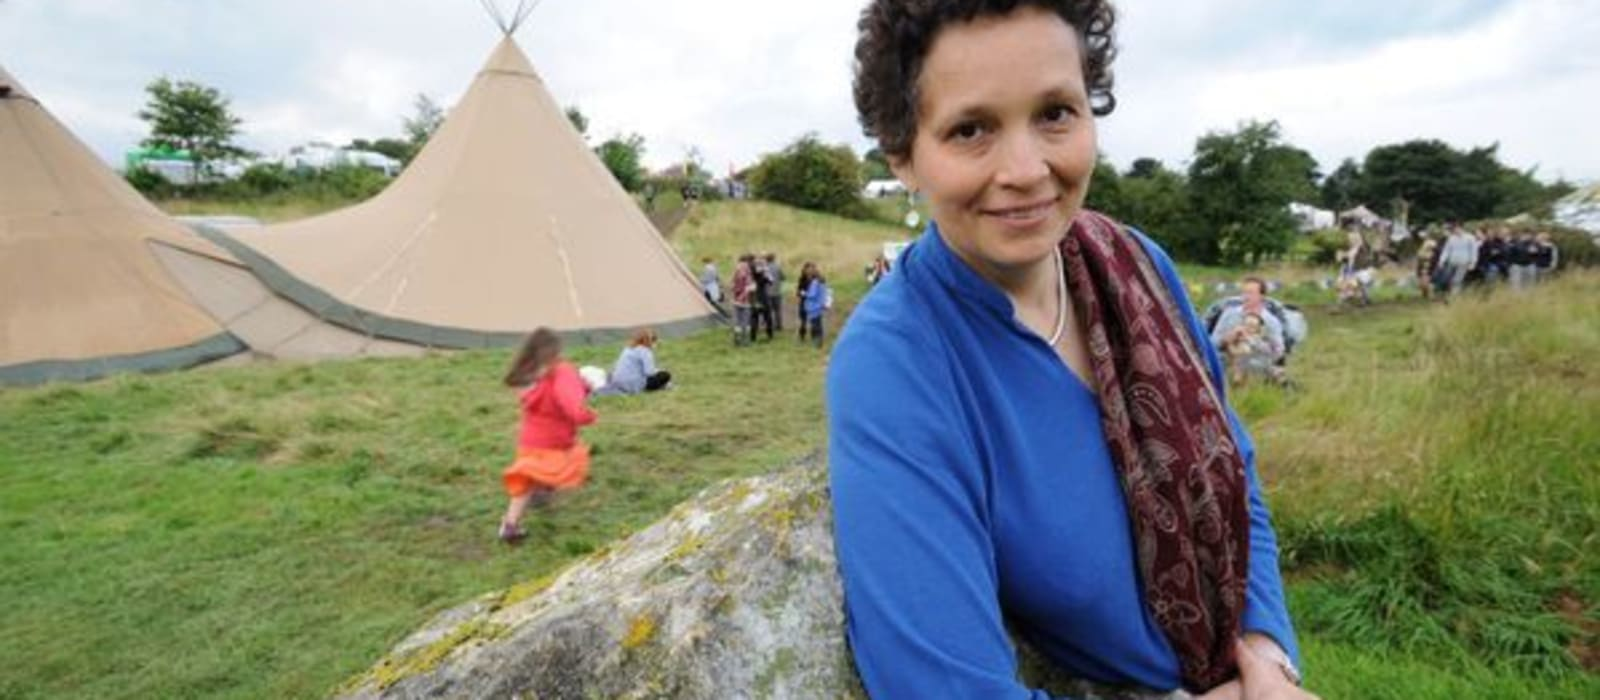 Professional storyteller Sita Brand at the Limetree Festival, Grewelthorpe, near Ripon, North Yorkshire